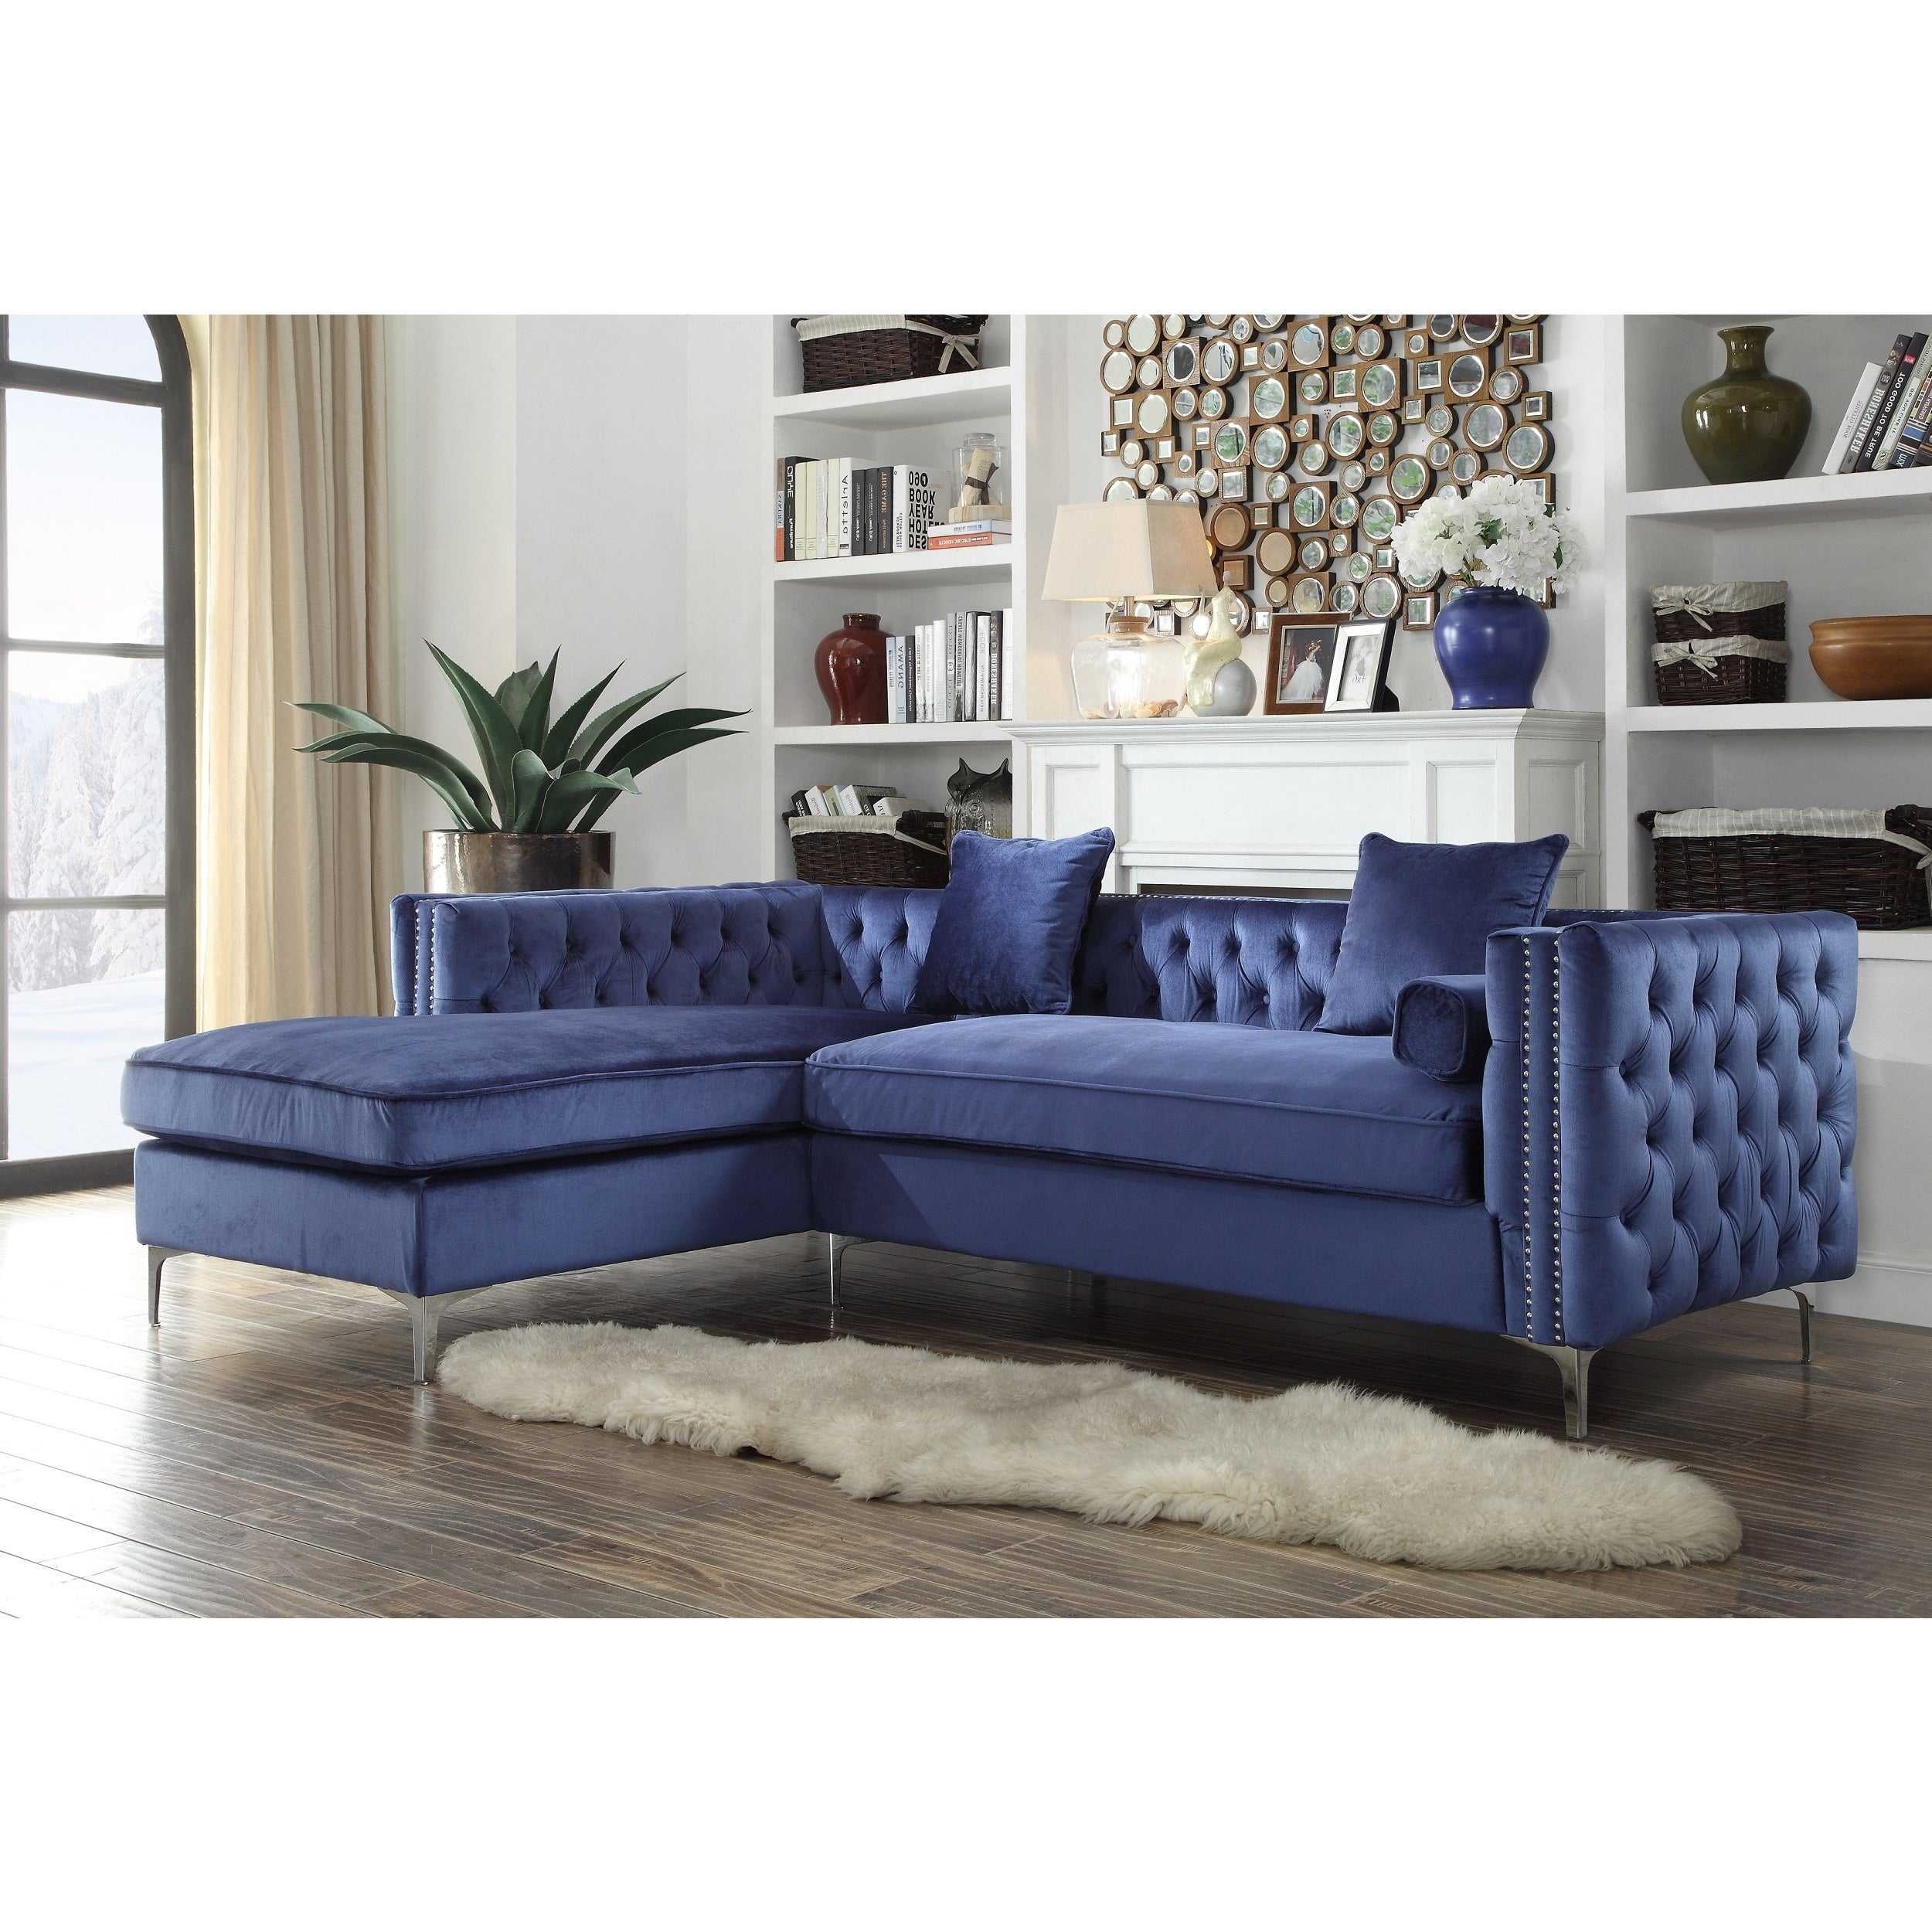 Ordinaire Chic Home Monet Velvet Silver Nailhead Trim Y Leg Left Facing Sectional Sofa,  Navy